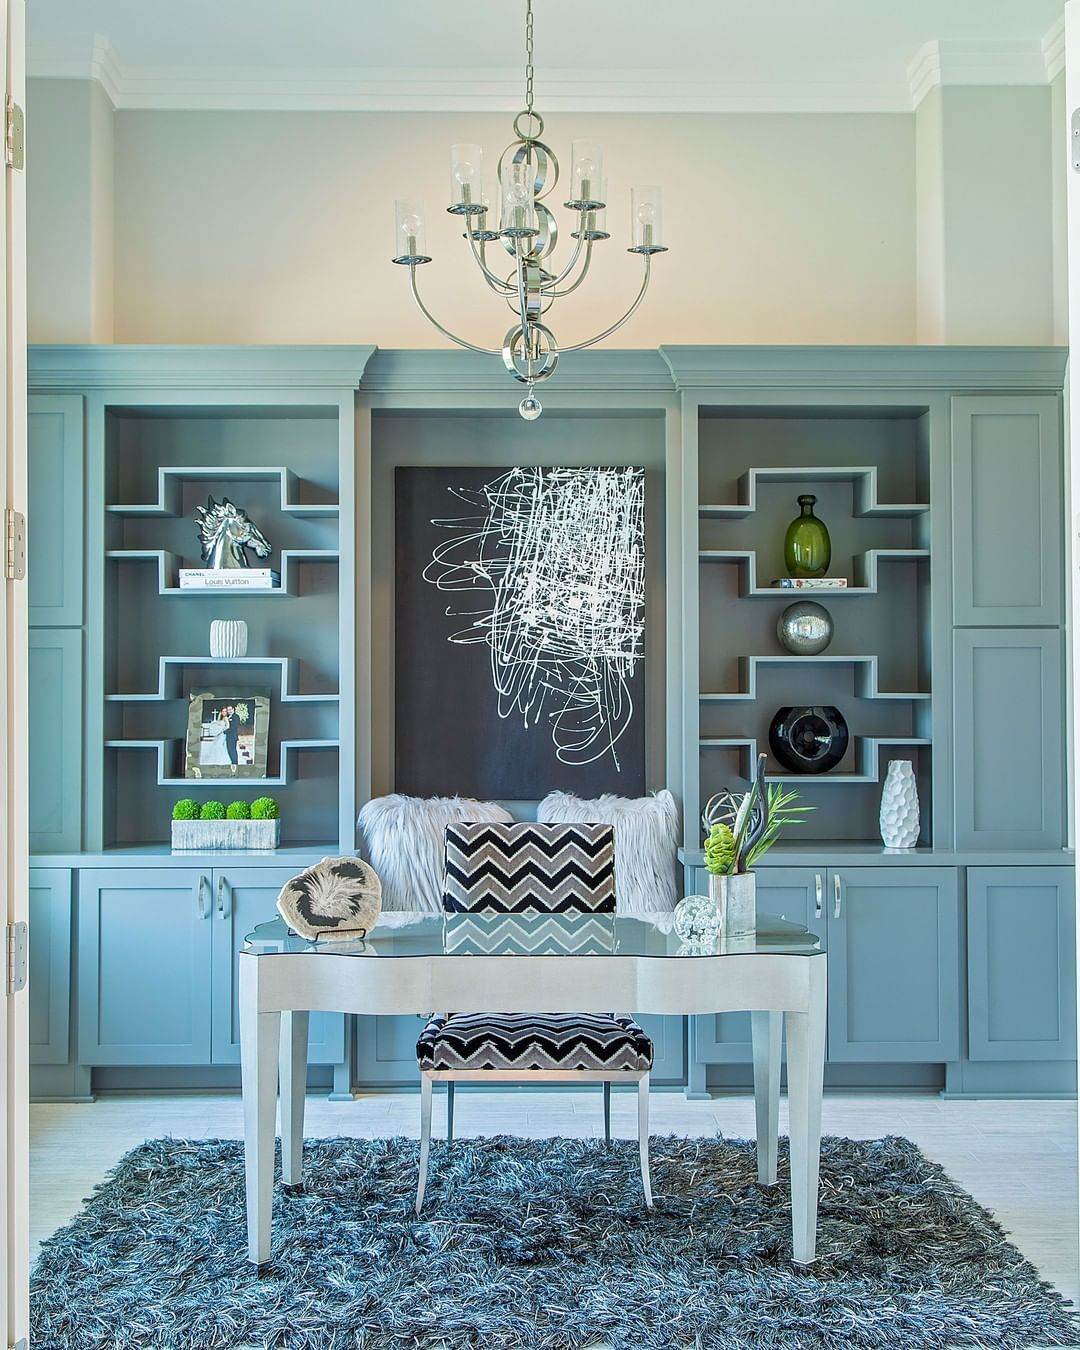 Bydesignhouston Posted To Instagram New Week New Possibilities This Workweek I Interior Design Dining Room Houston Interior Designers Interior Design Firms